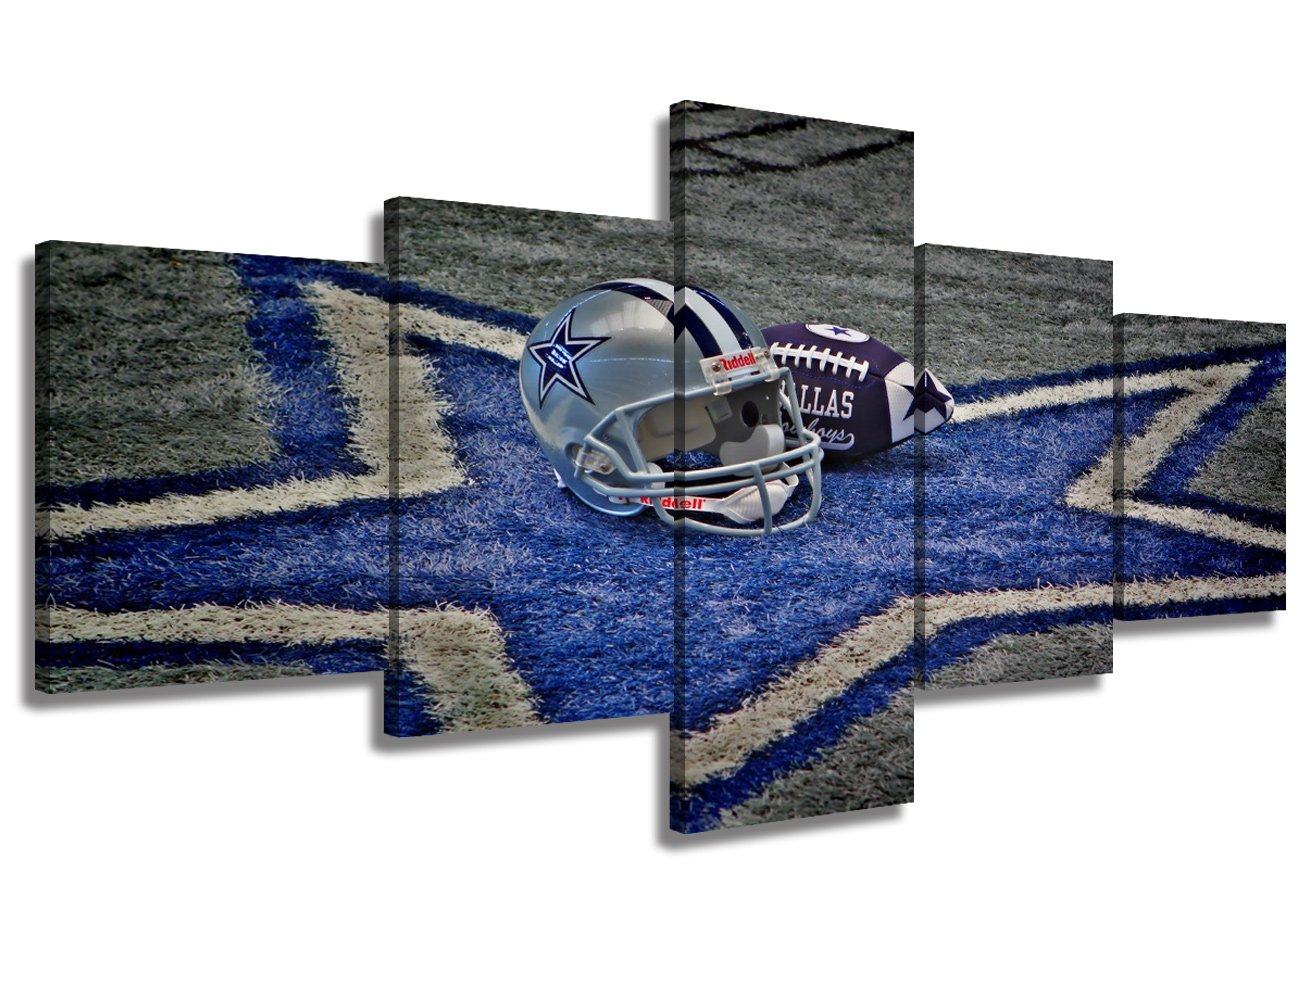 Contemporary Wall Art Dallas Cowboys Home Decor NFL Prints on Canvas Painting,5 Piece Artwork Giclee Picture for Living Room,Posters and Prints Wooden Framed Gallery-wrapped Ready to Hang(50''Wx24''H)